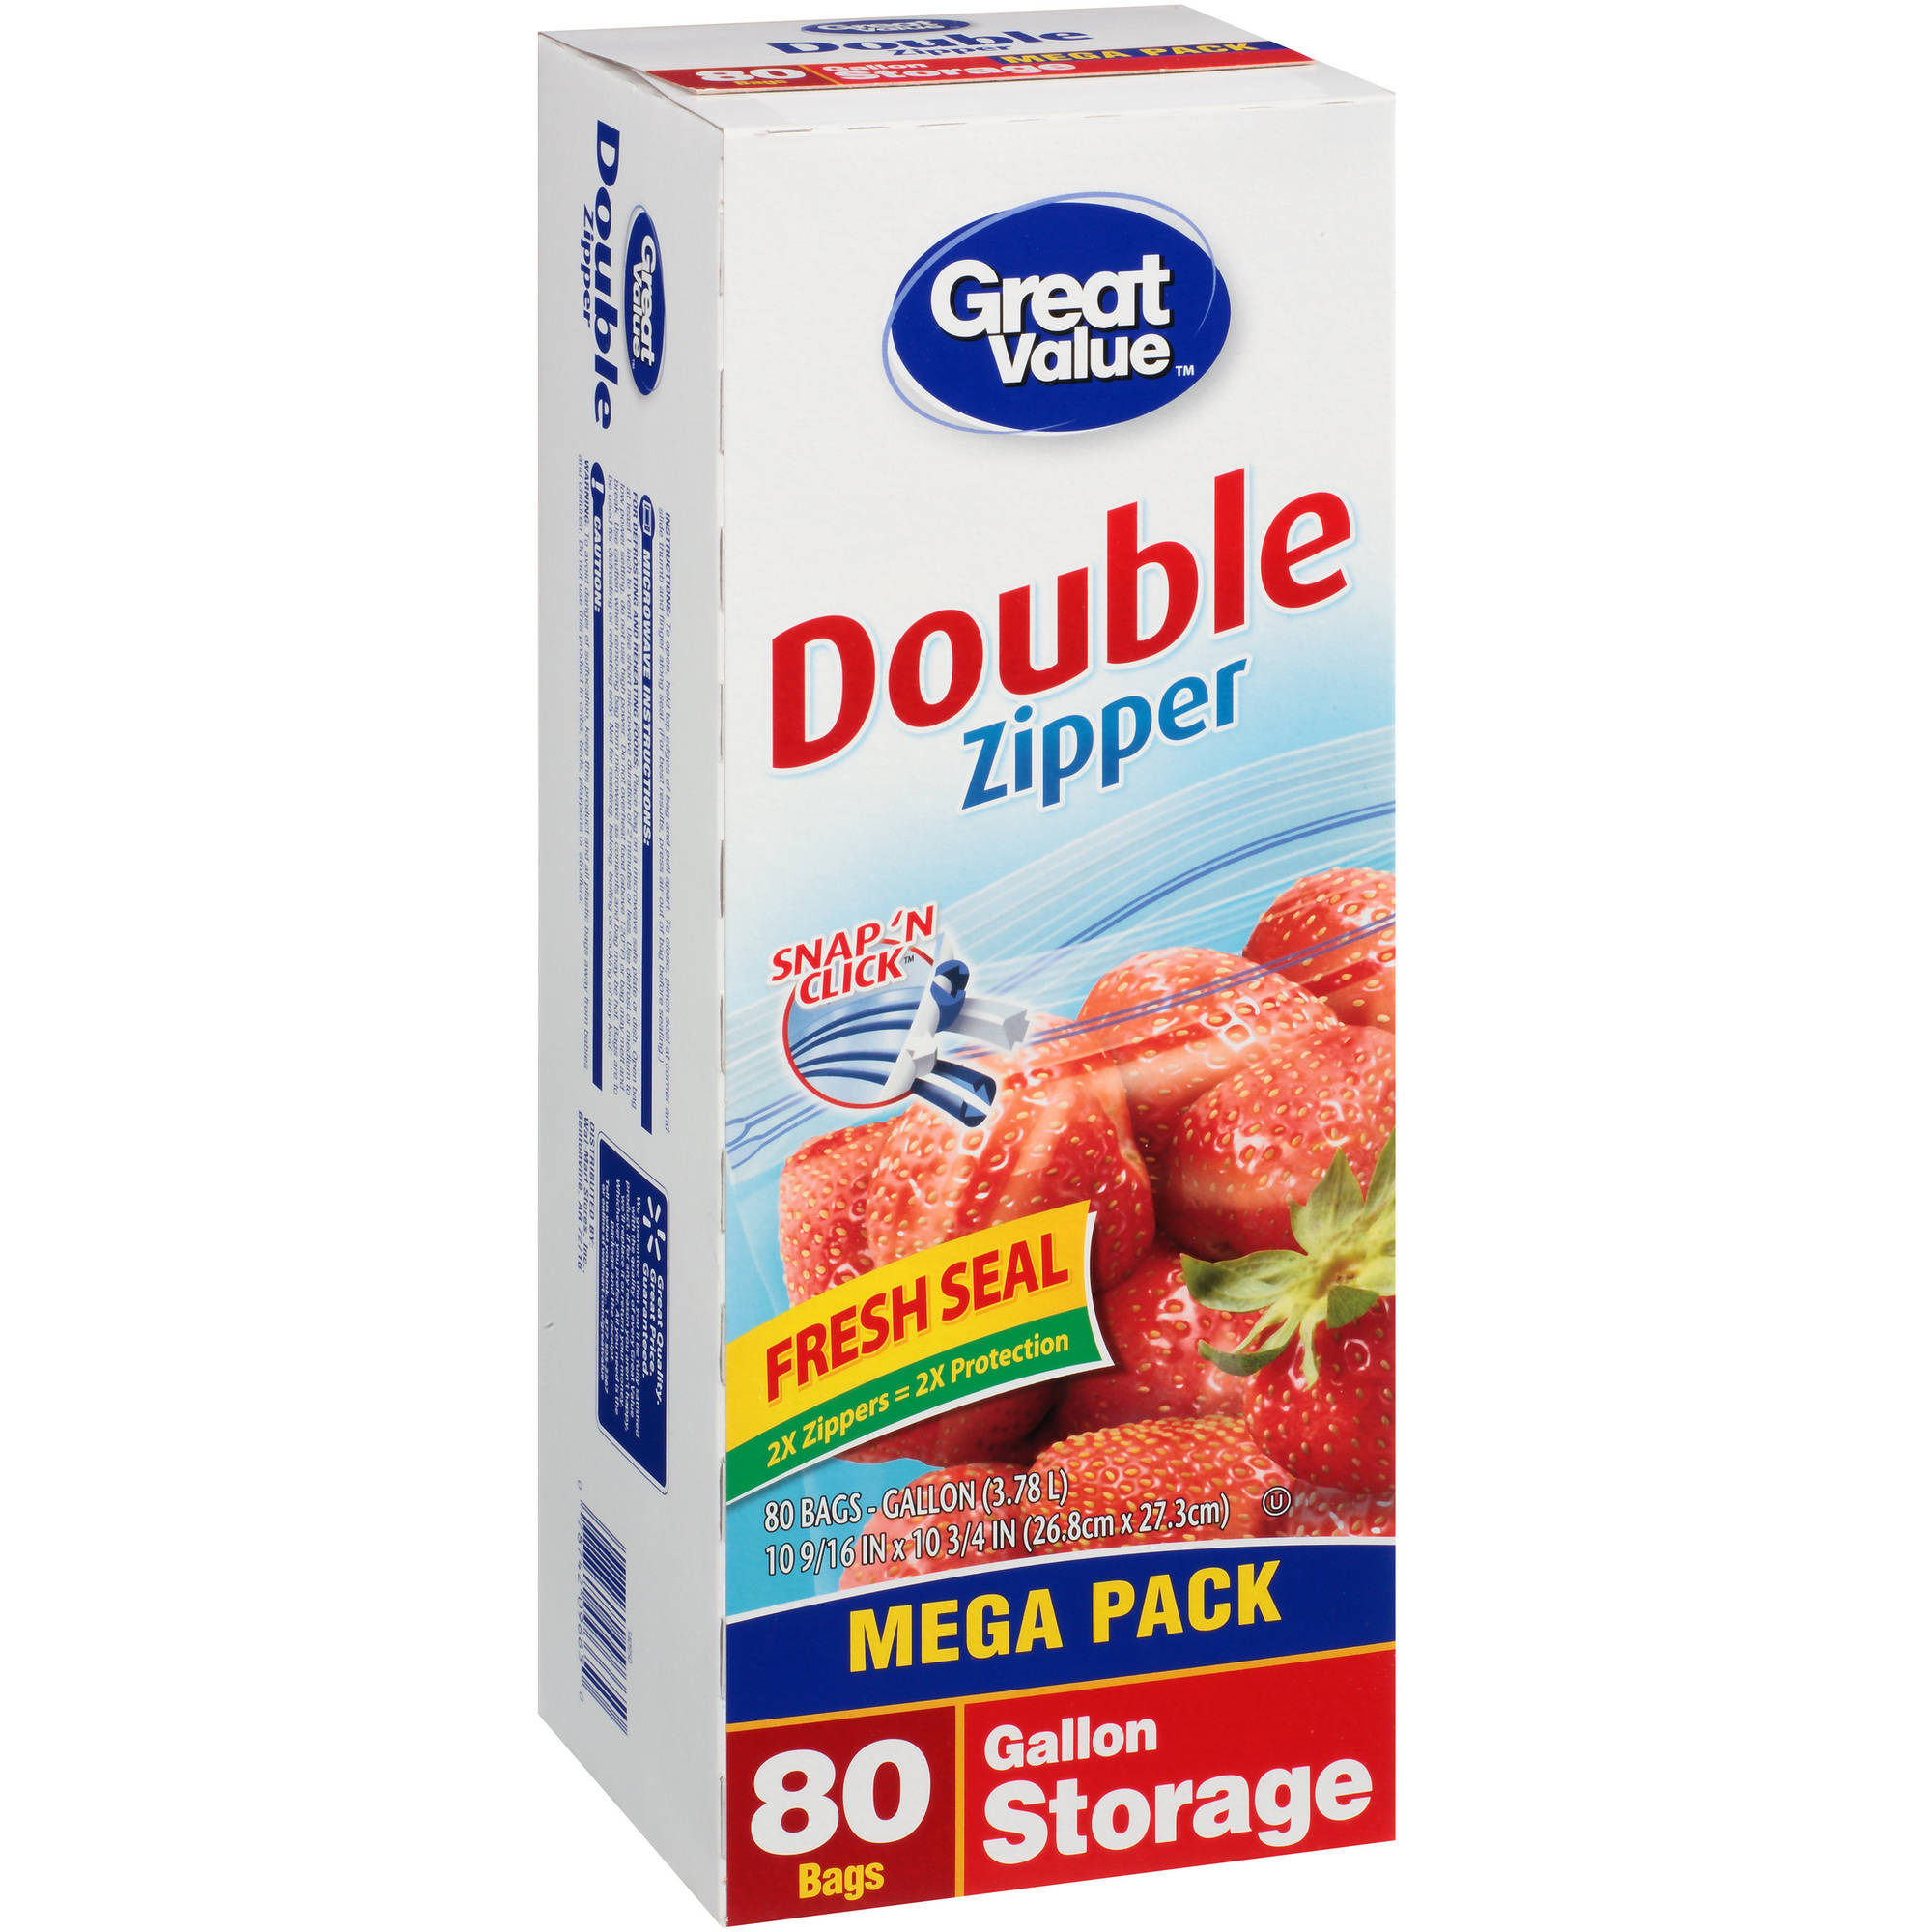 Great Value Double Zipper Gallon Size Storage Bags, 80 count